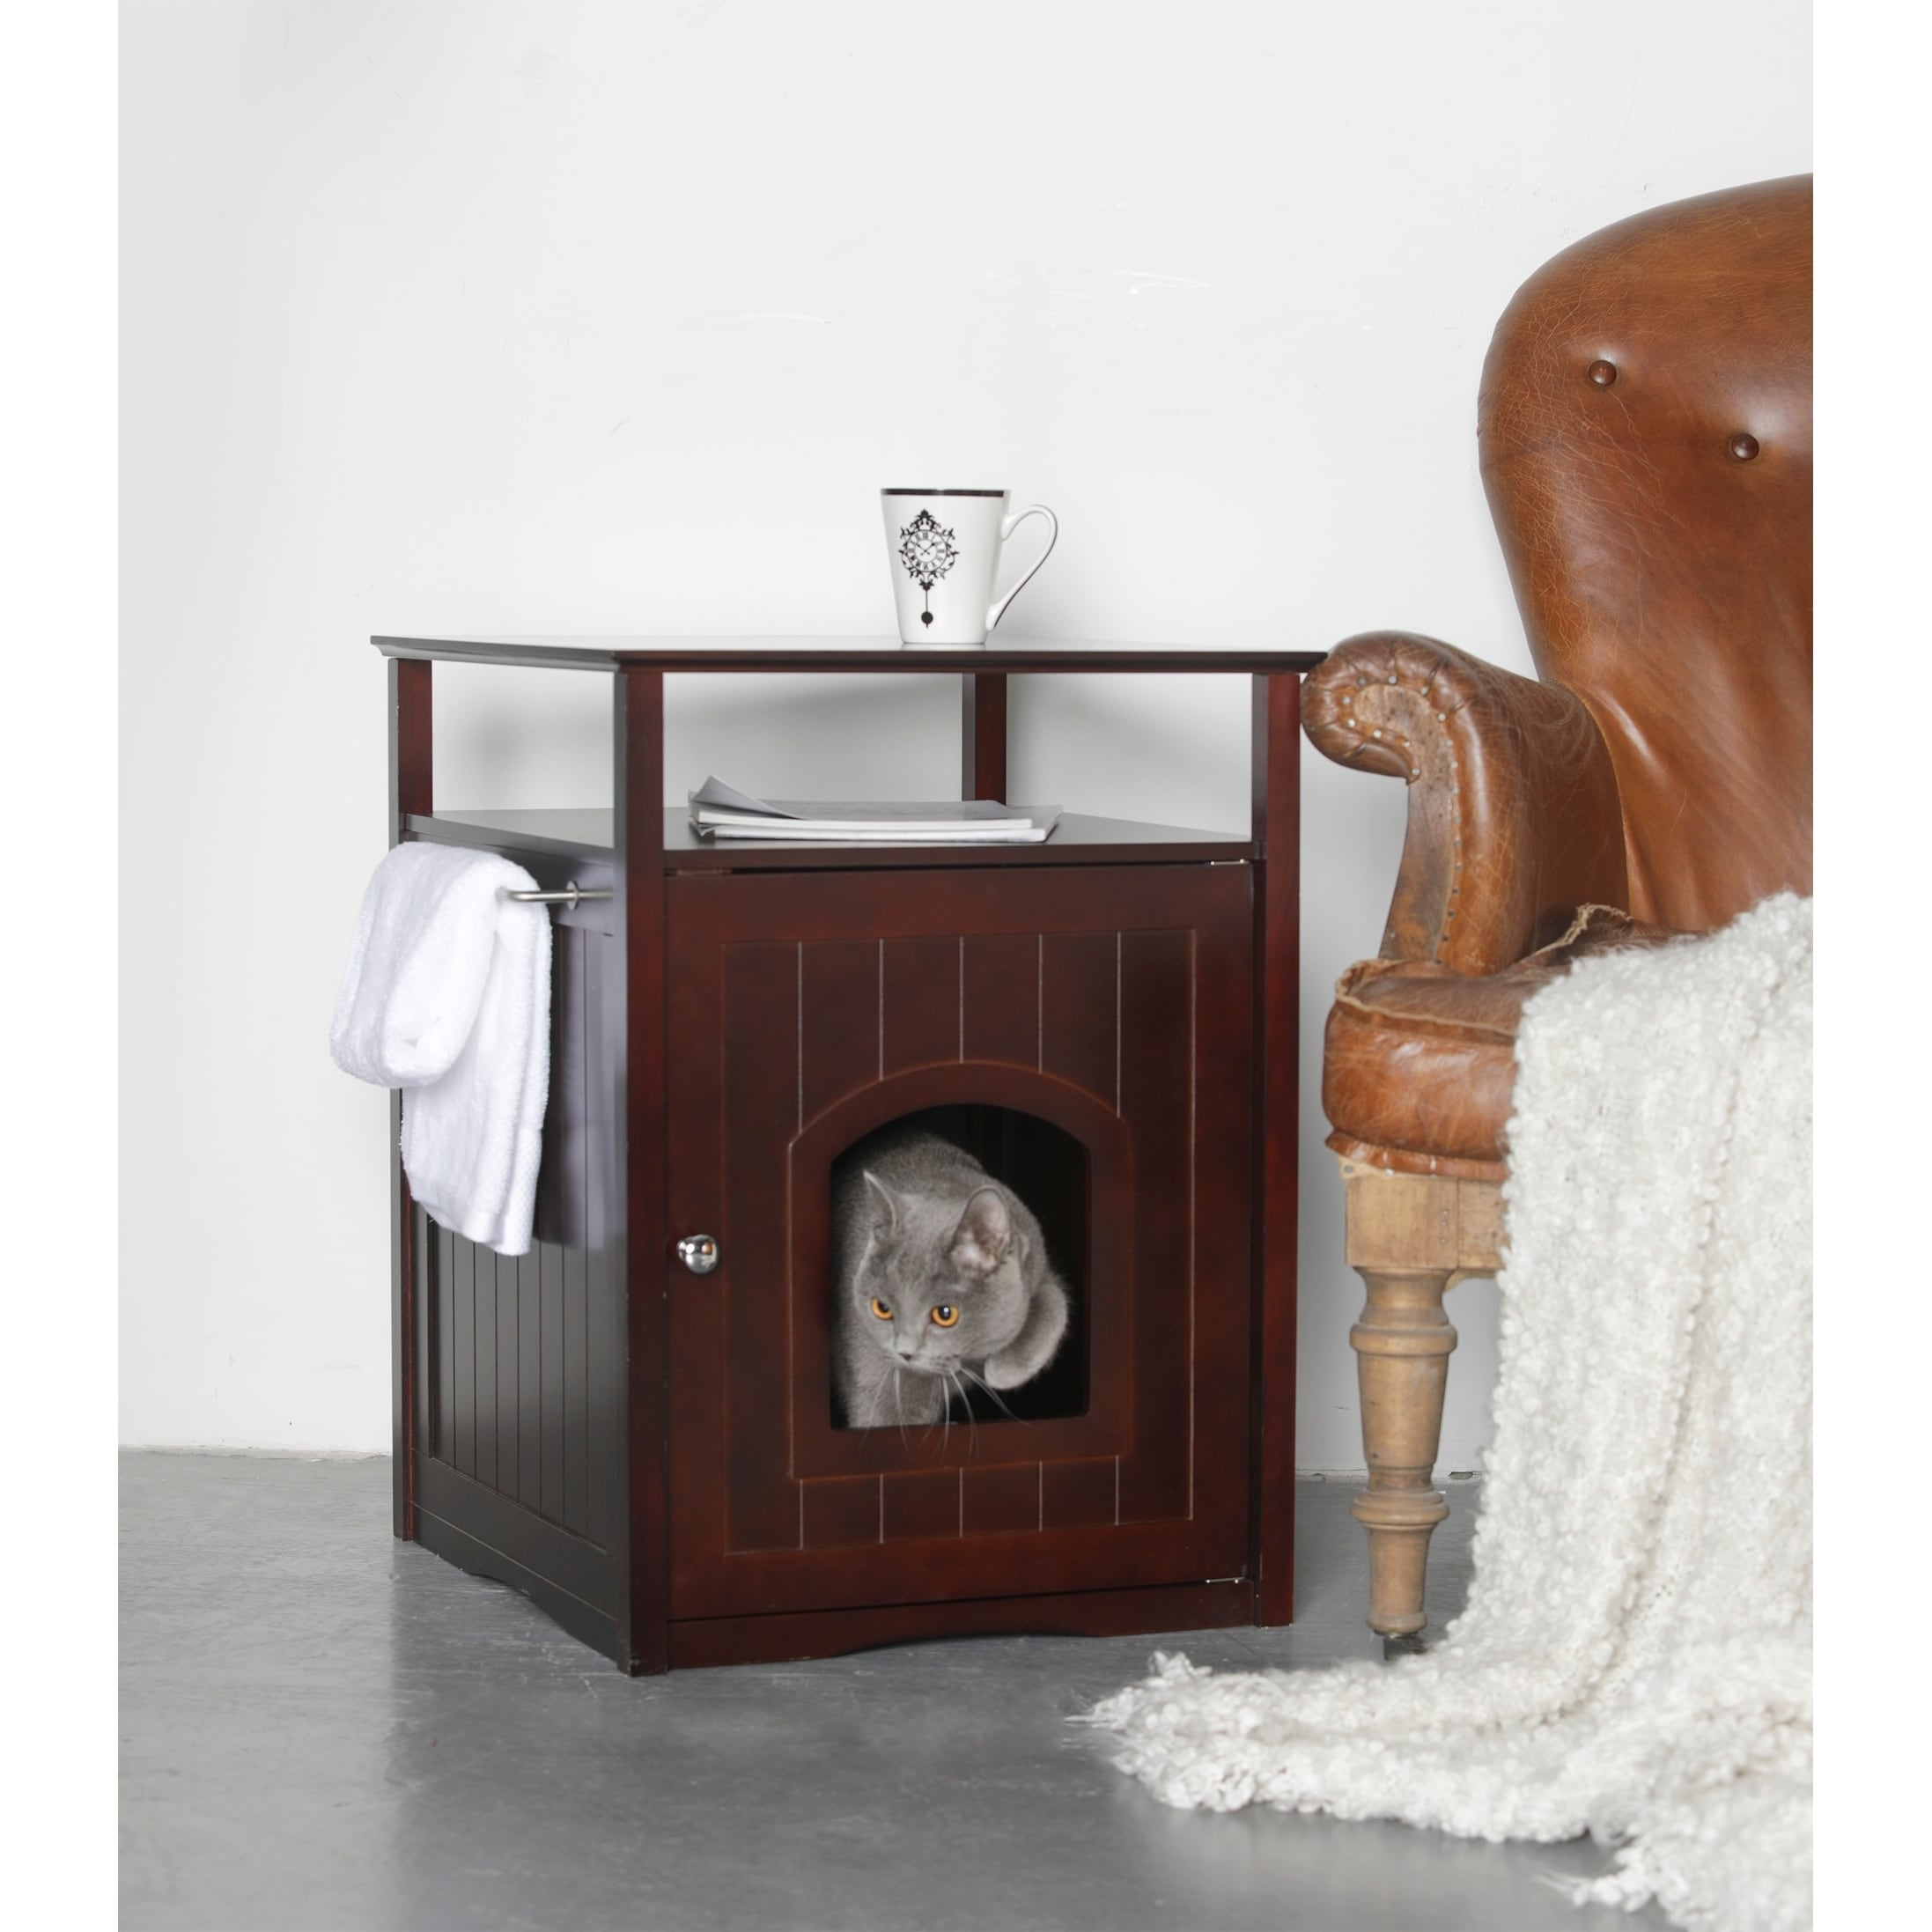 hidden cat box furniture. Merry Products Kitty Espresso Comfort Room Hidden Litter Cat Box Furniture - Free Shipping Today Overstock.com 13110956